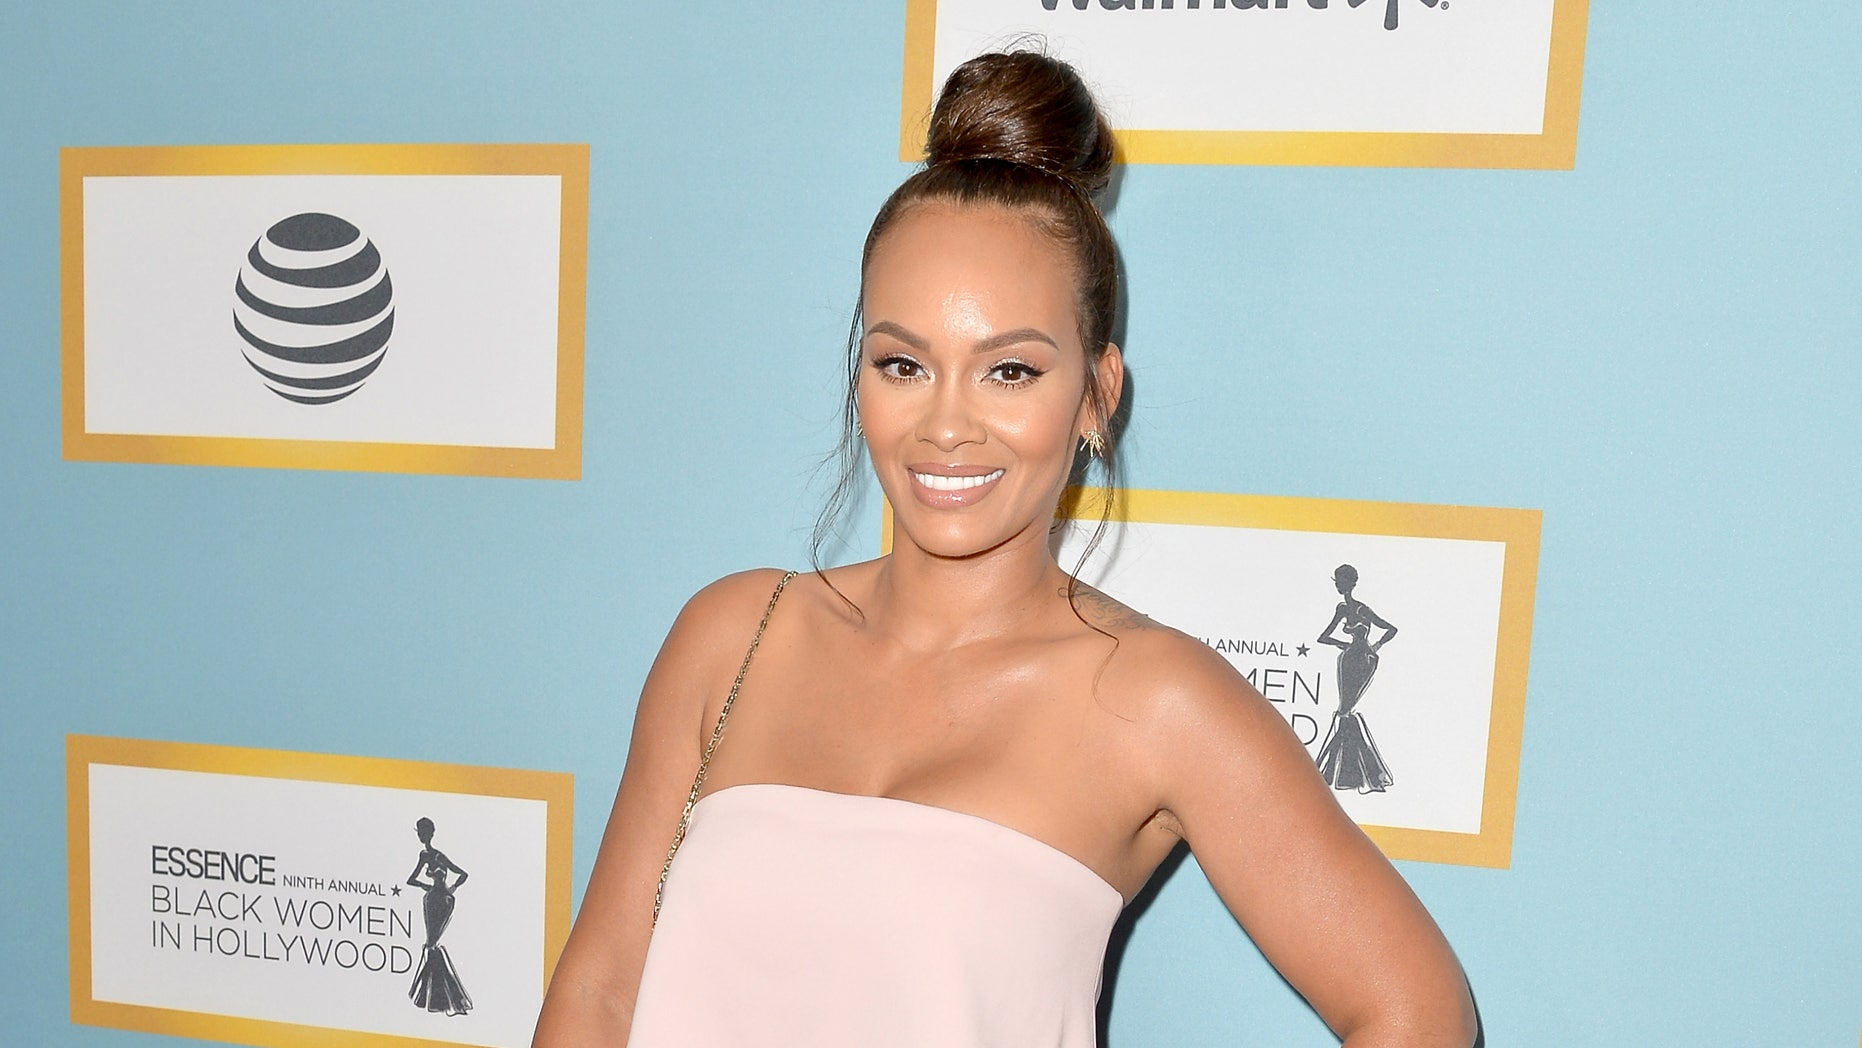 BEVERLY HILLS, CA - FEBRUARY 25: TV personality Evelyn Lozada attends the 2016 ESSENCE Black Women In Hollywood awards luncheon at the Beverly Wilshire Four Seasons Hotel on February 25, 2016 in Beverly Hills, California.  (Photo by Earl Gibson III/Getty Images for ESSENCE)